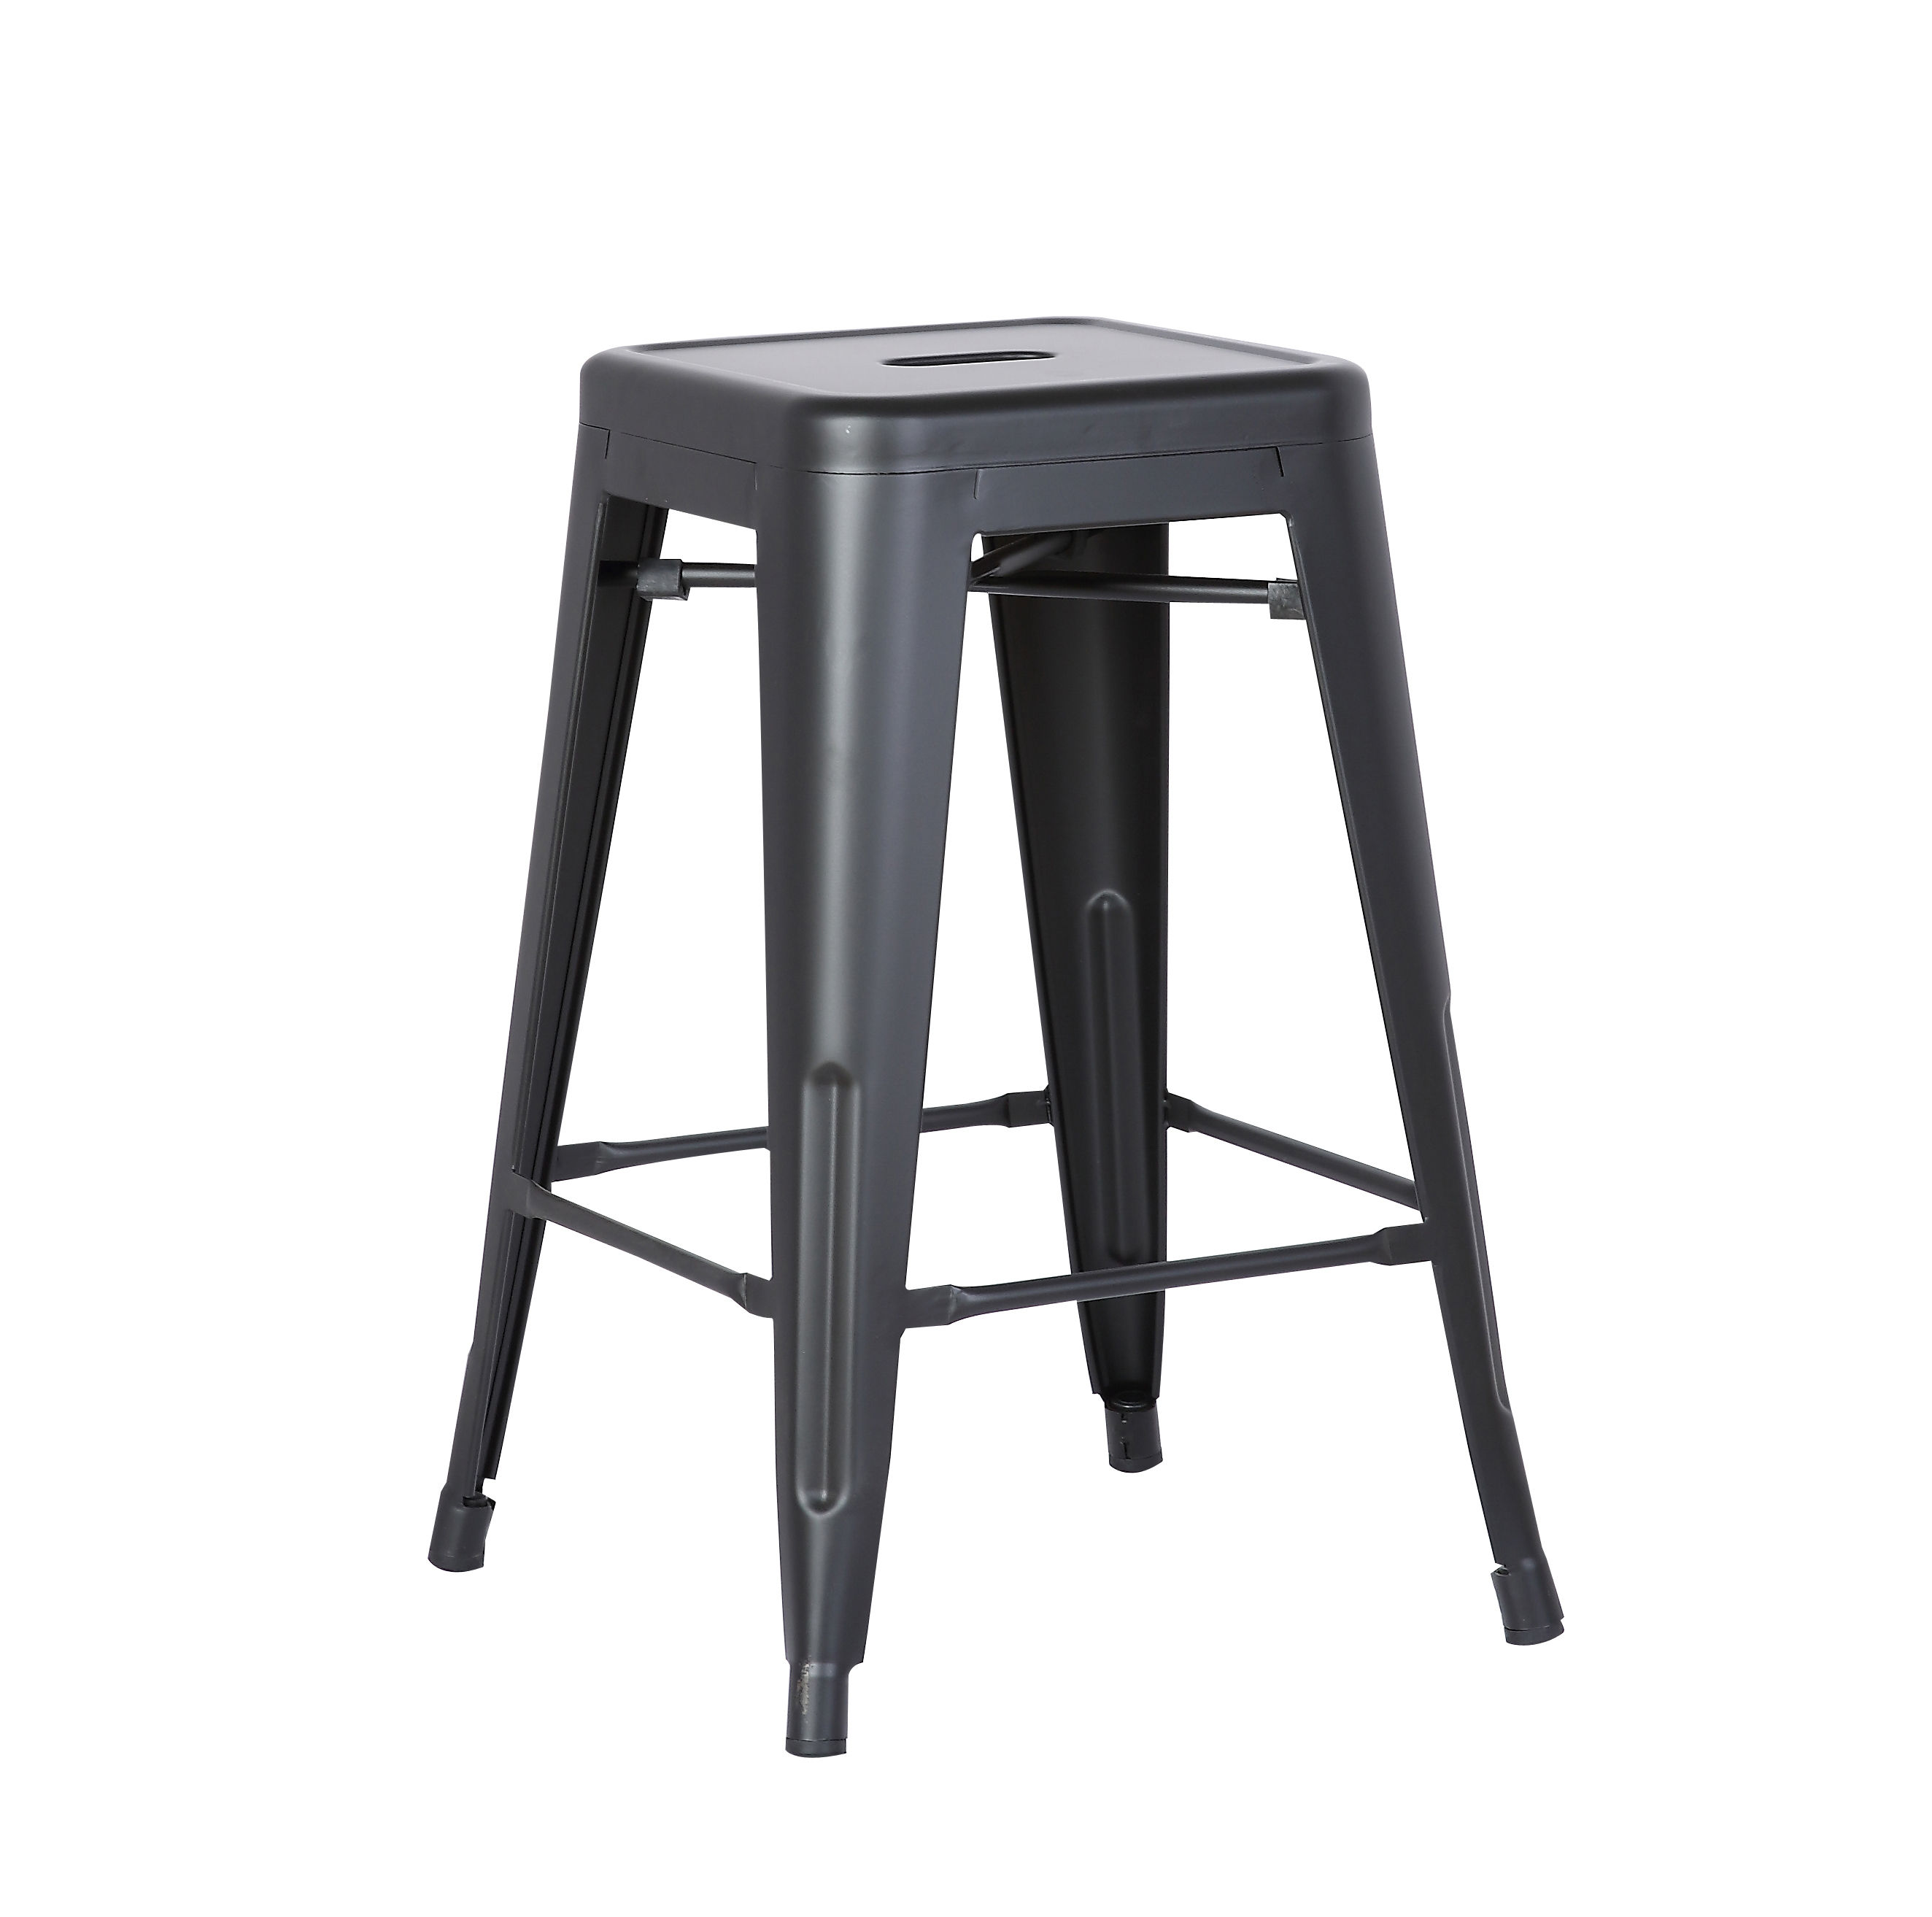 2 Ac Pacific Acbs01 Matte Black Costal Metal 24 Inch Bar Stools